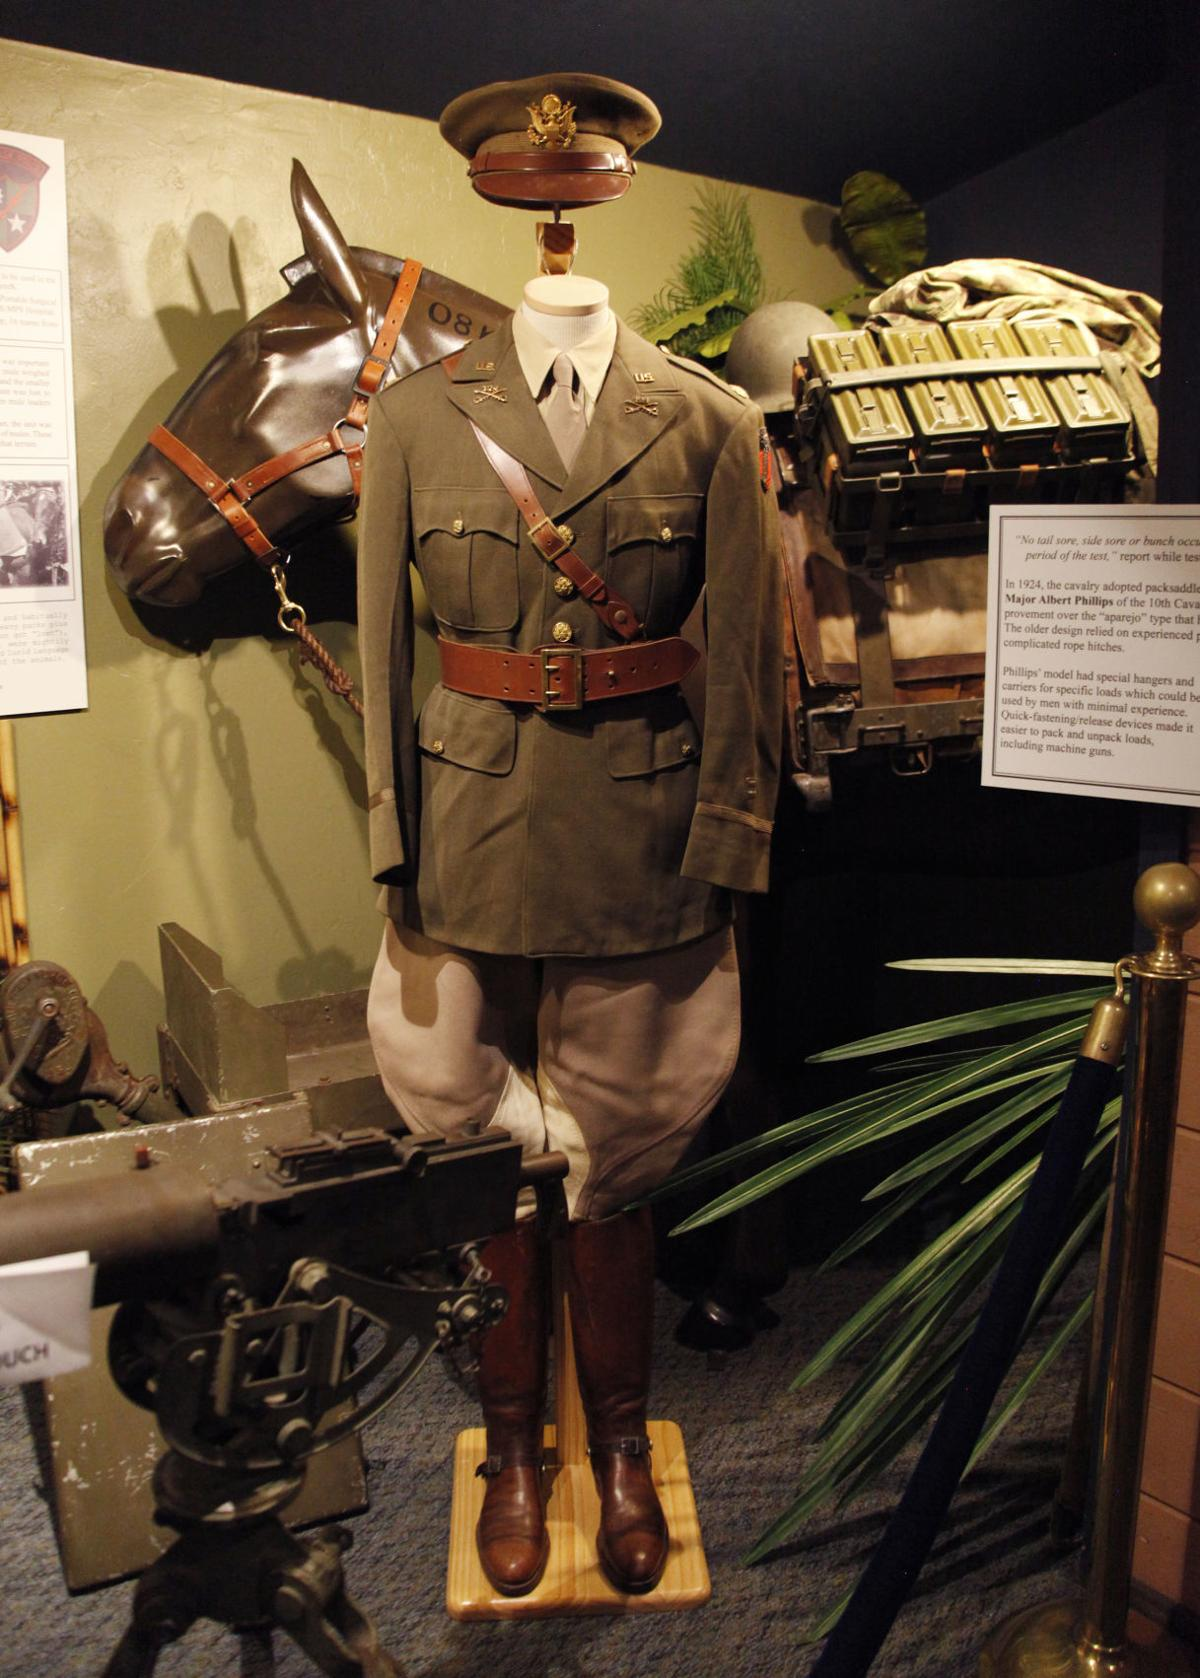 Tucson history museums deliver unexpected discoveries